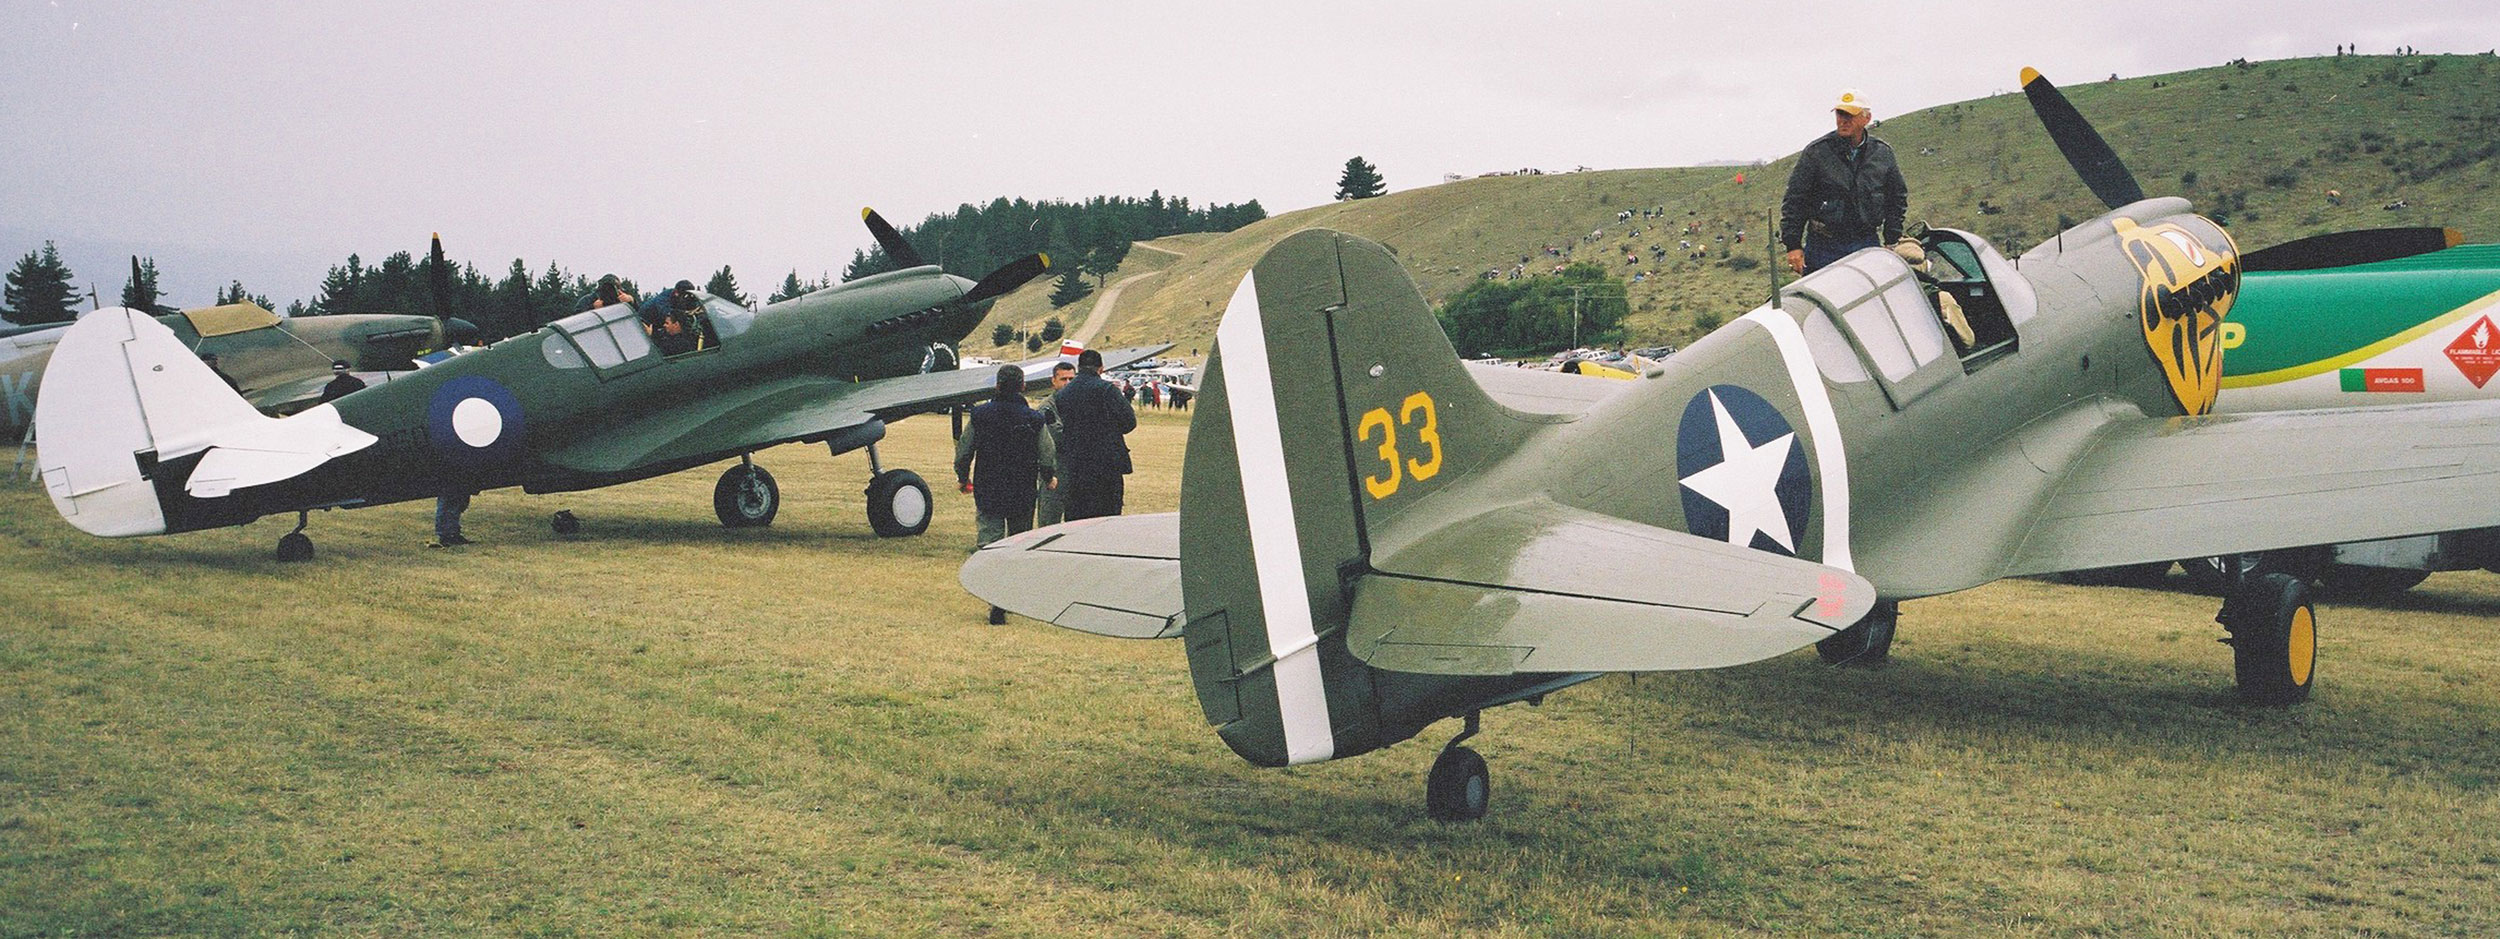 A view of the Kitty Hawk and another war plane from the rear out to the hills of Wanaka